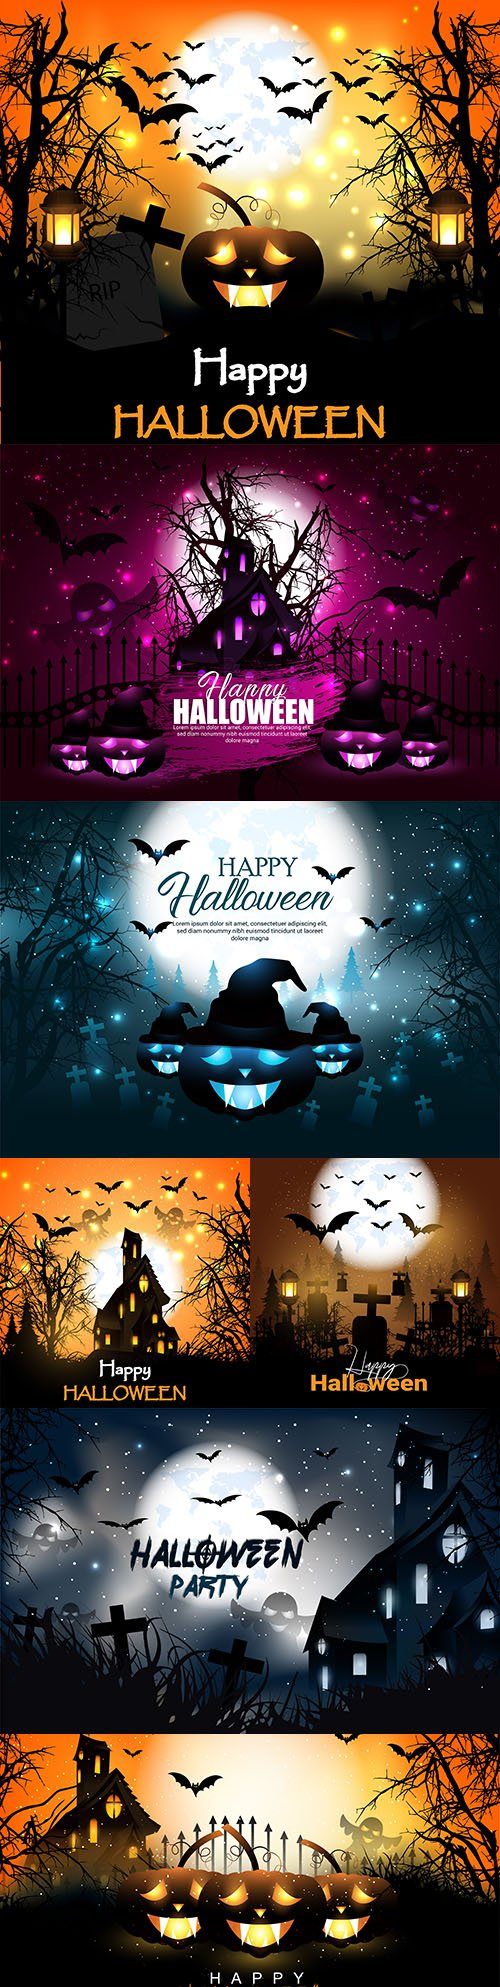 Halloween pumpkin and bat illustration horror